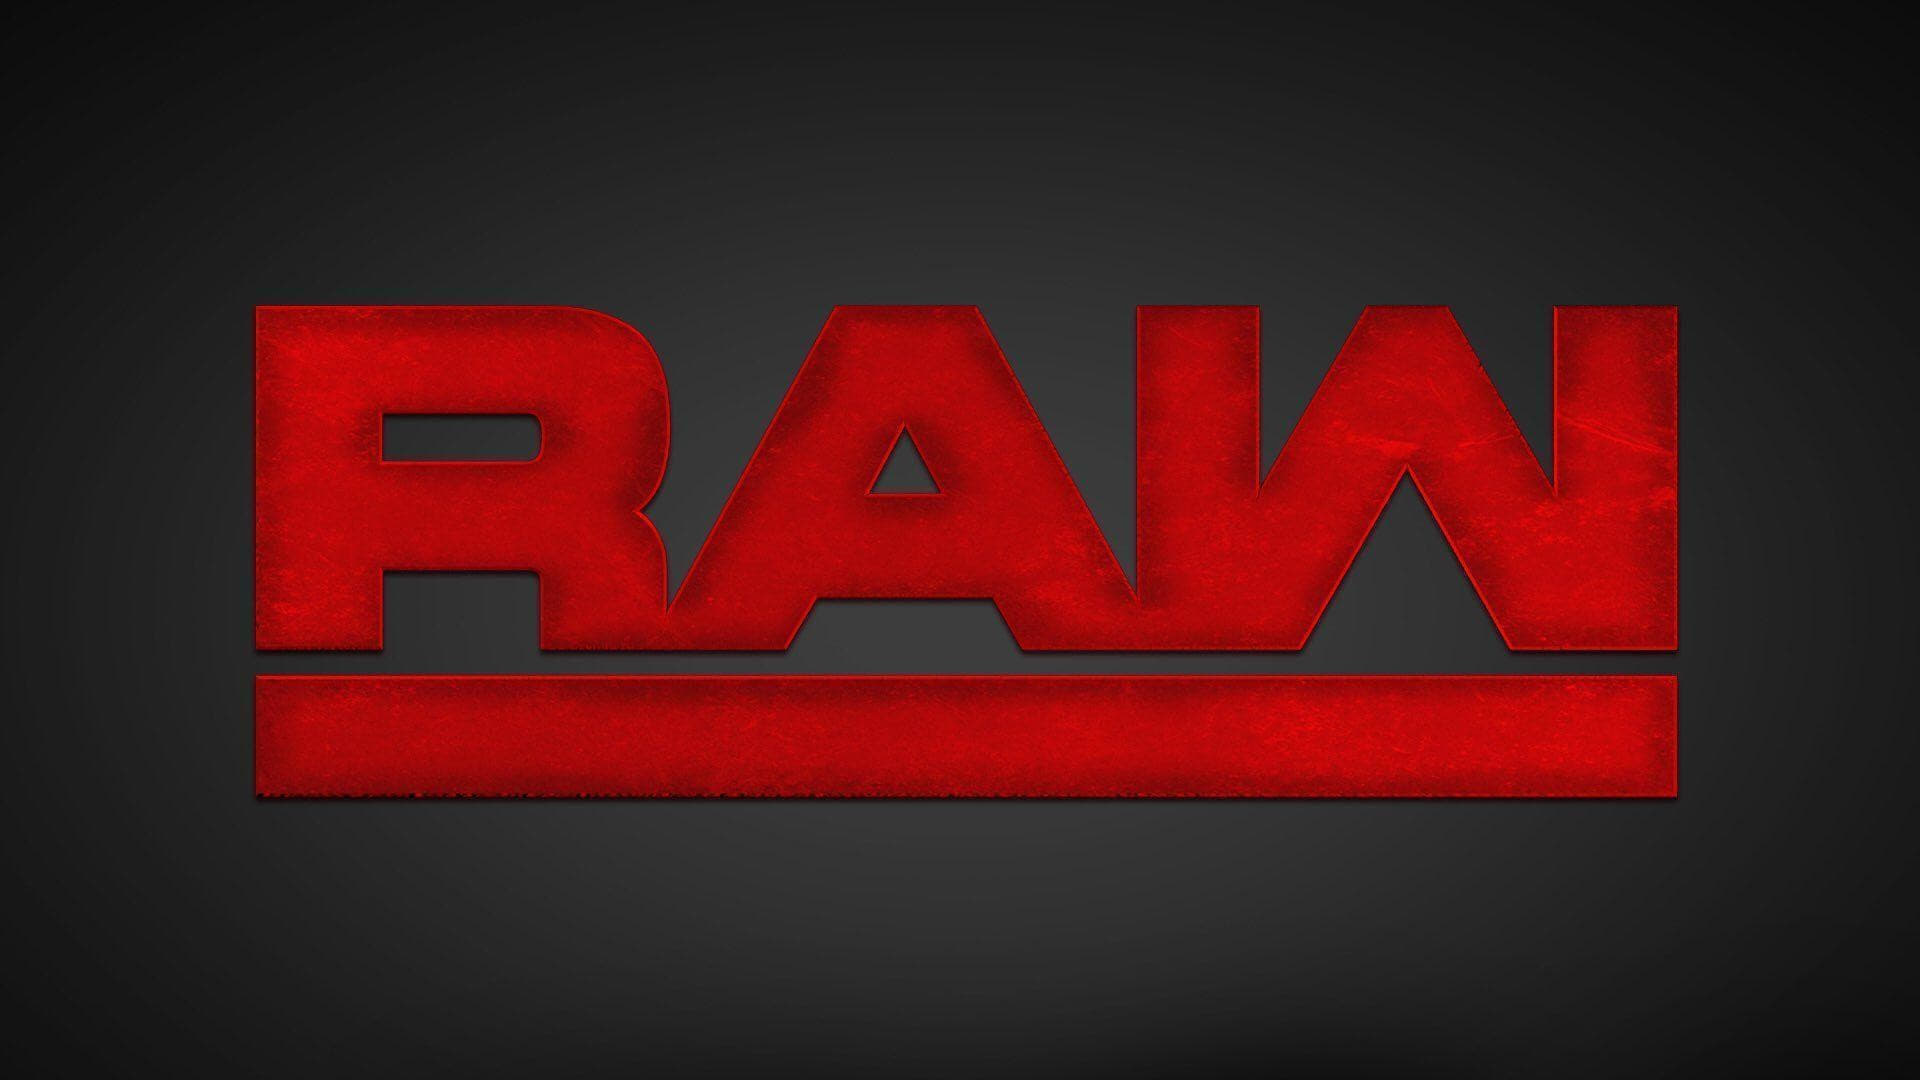 WWE Raw - Season 23 Episode 39 : September 28, 2015 (Buffalo, NY) (1970)